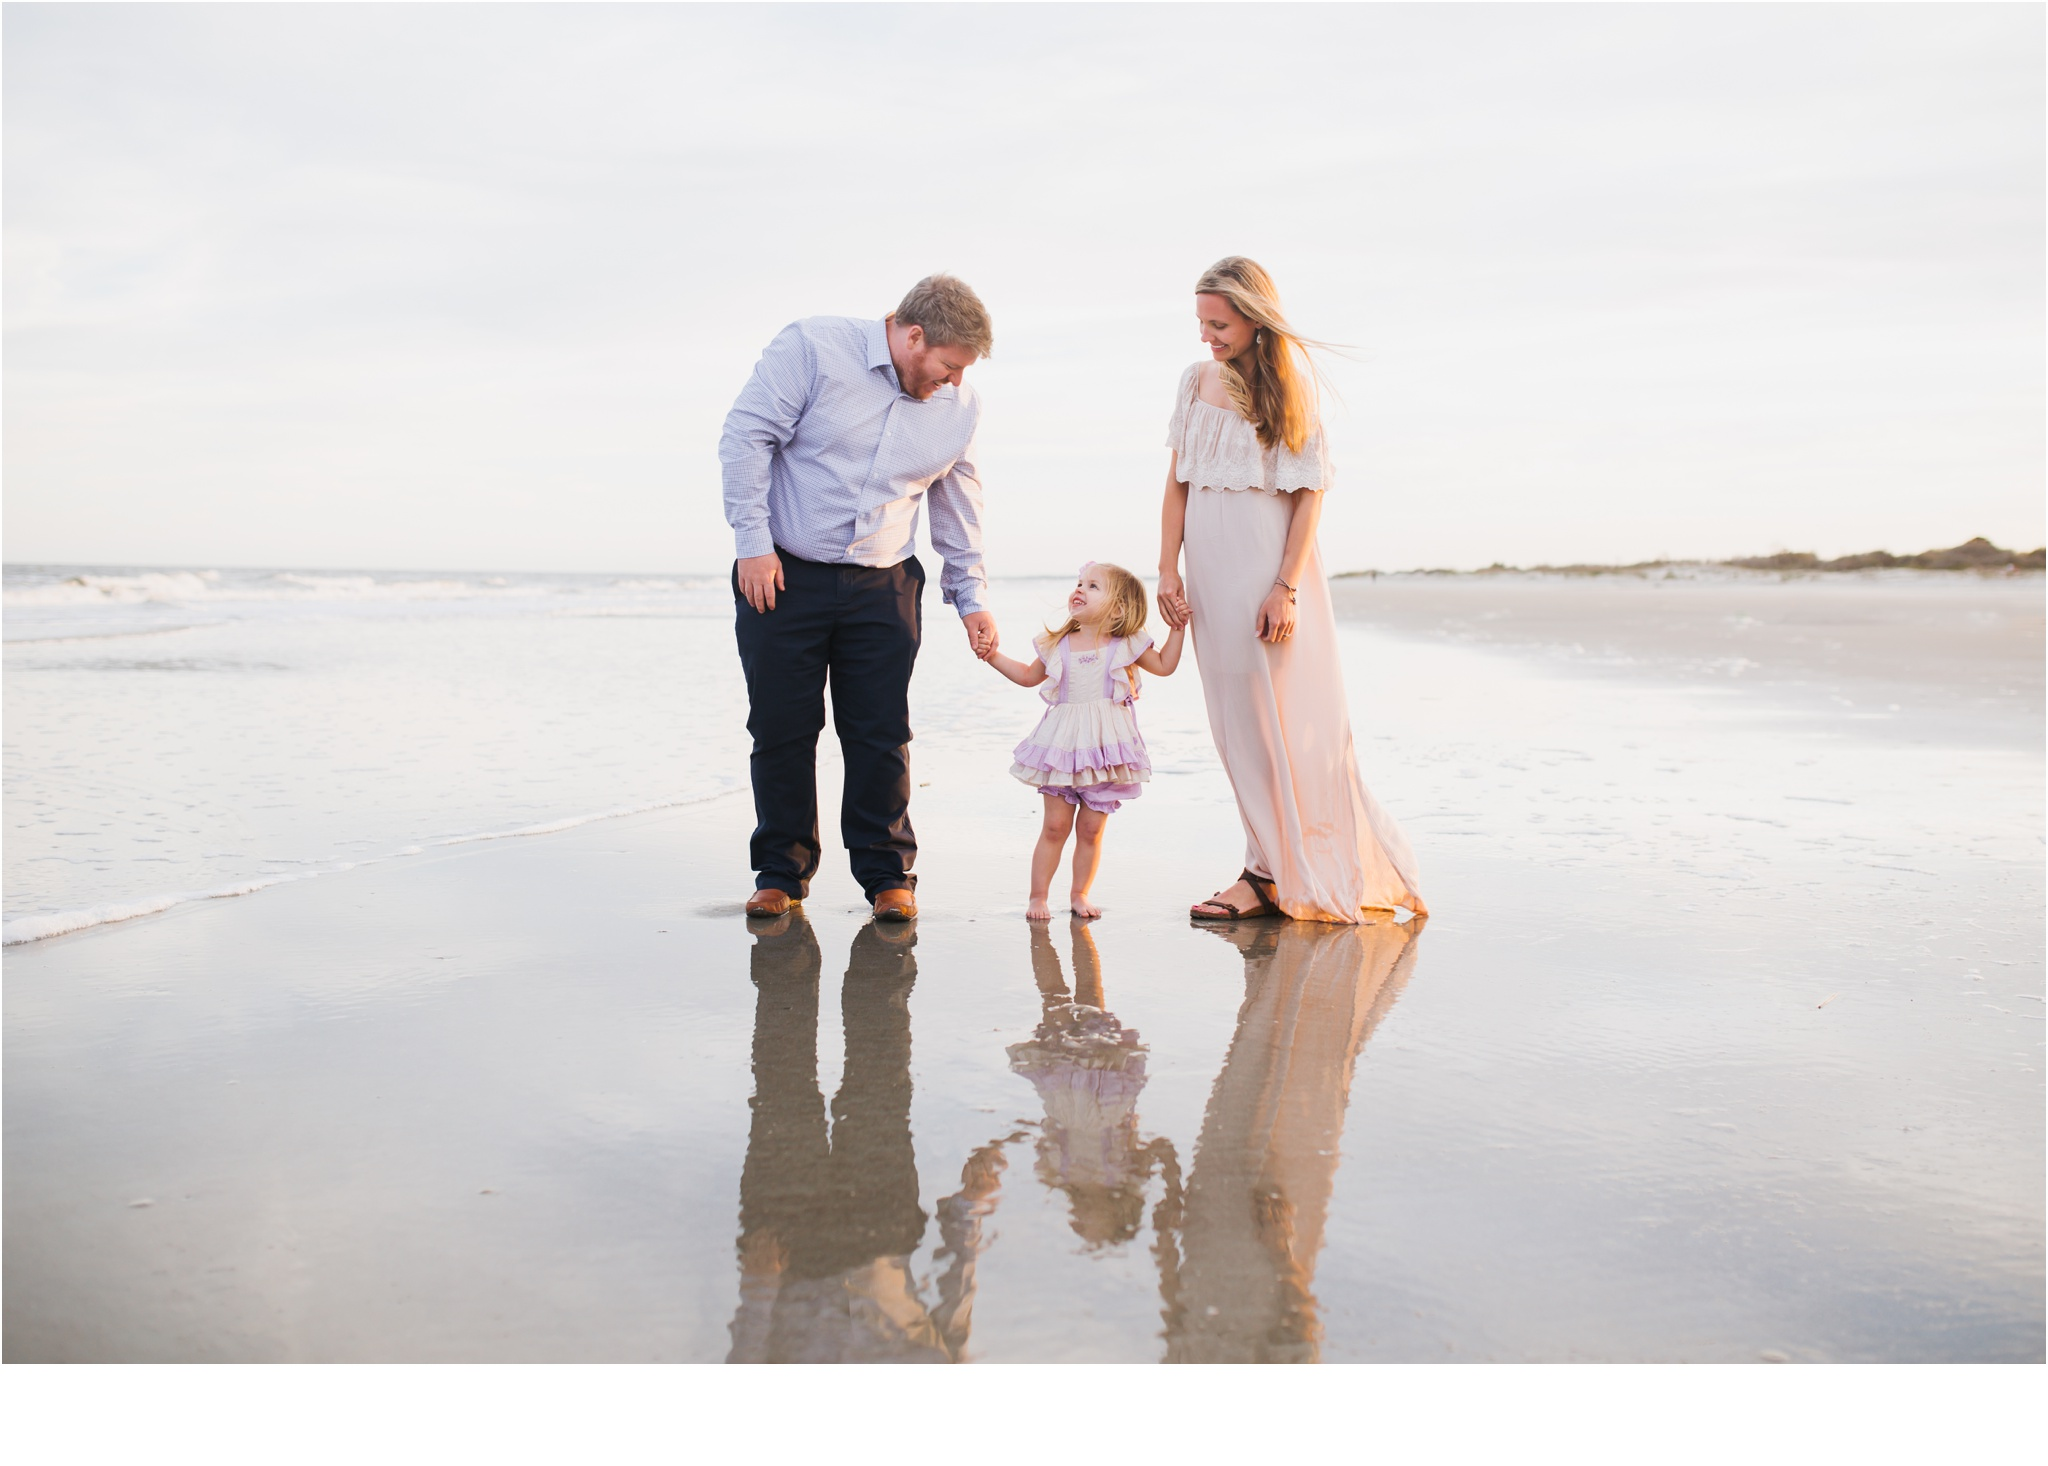 Rainey_Gregg_Photography_St._Simons_Island_Georgia_California_Wedding_Portrait_Photography_1754.jpg